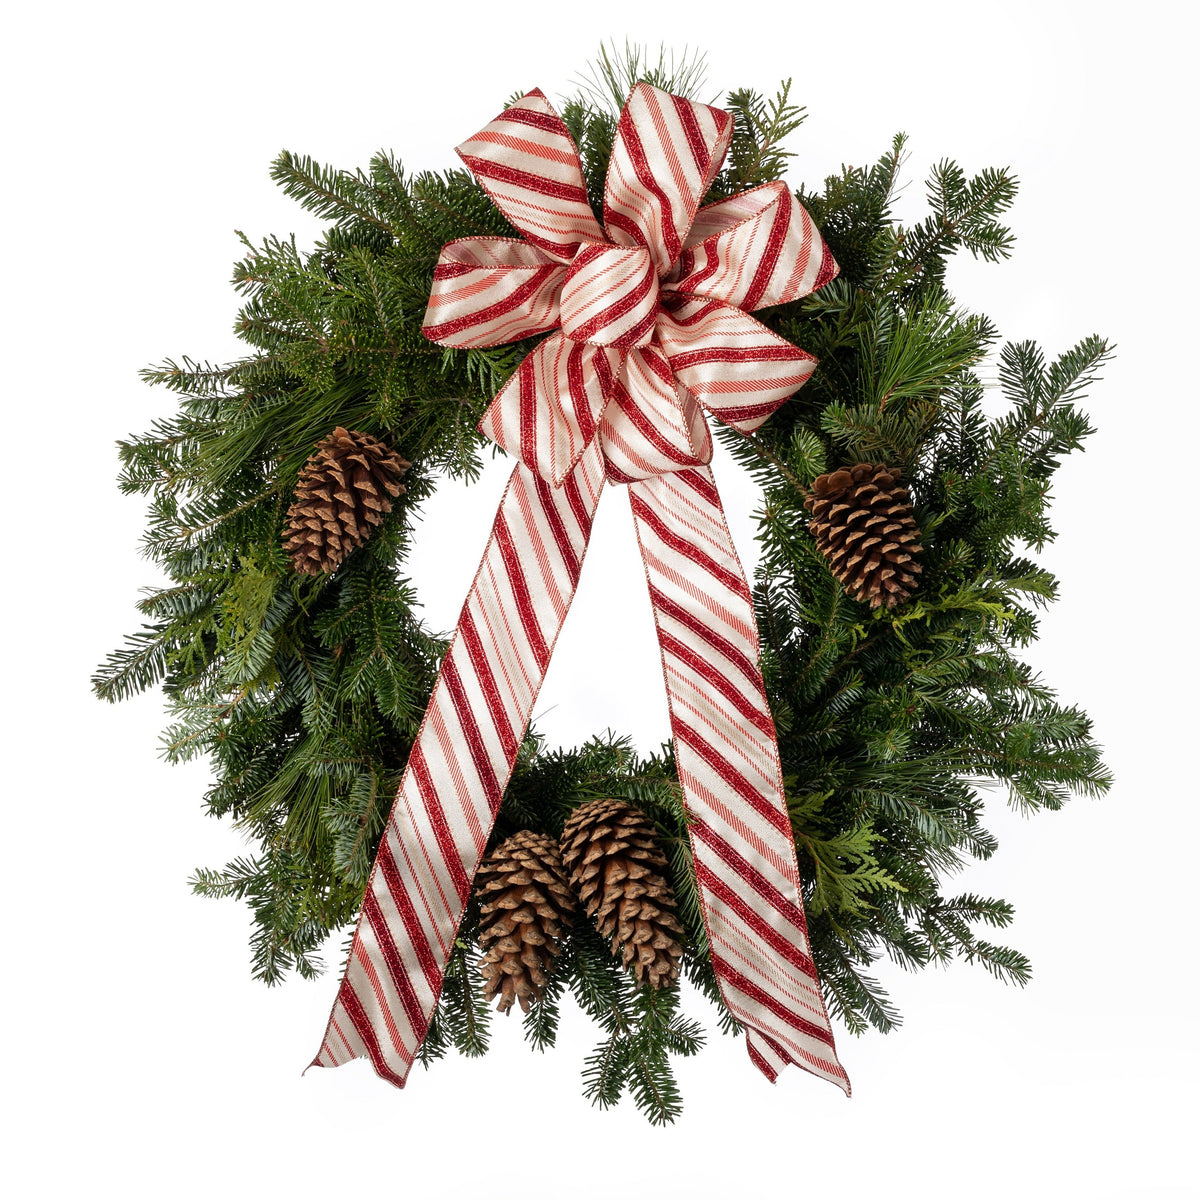 PRE-ORDER Candy Cane Wreath